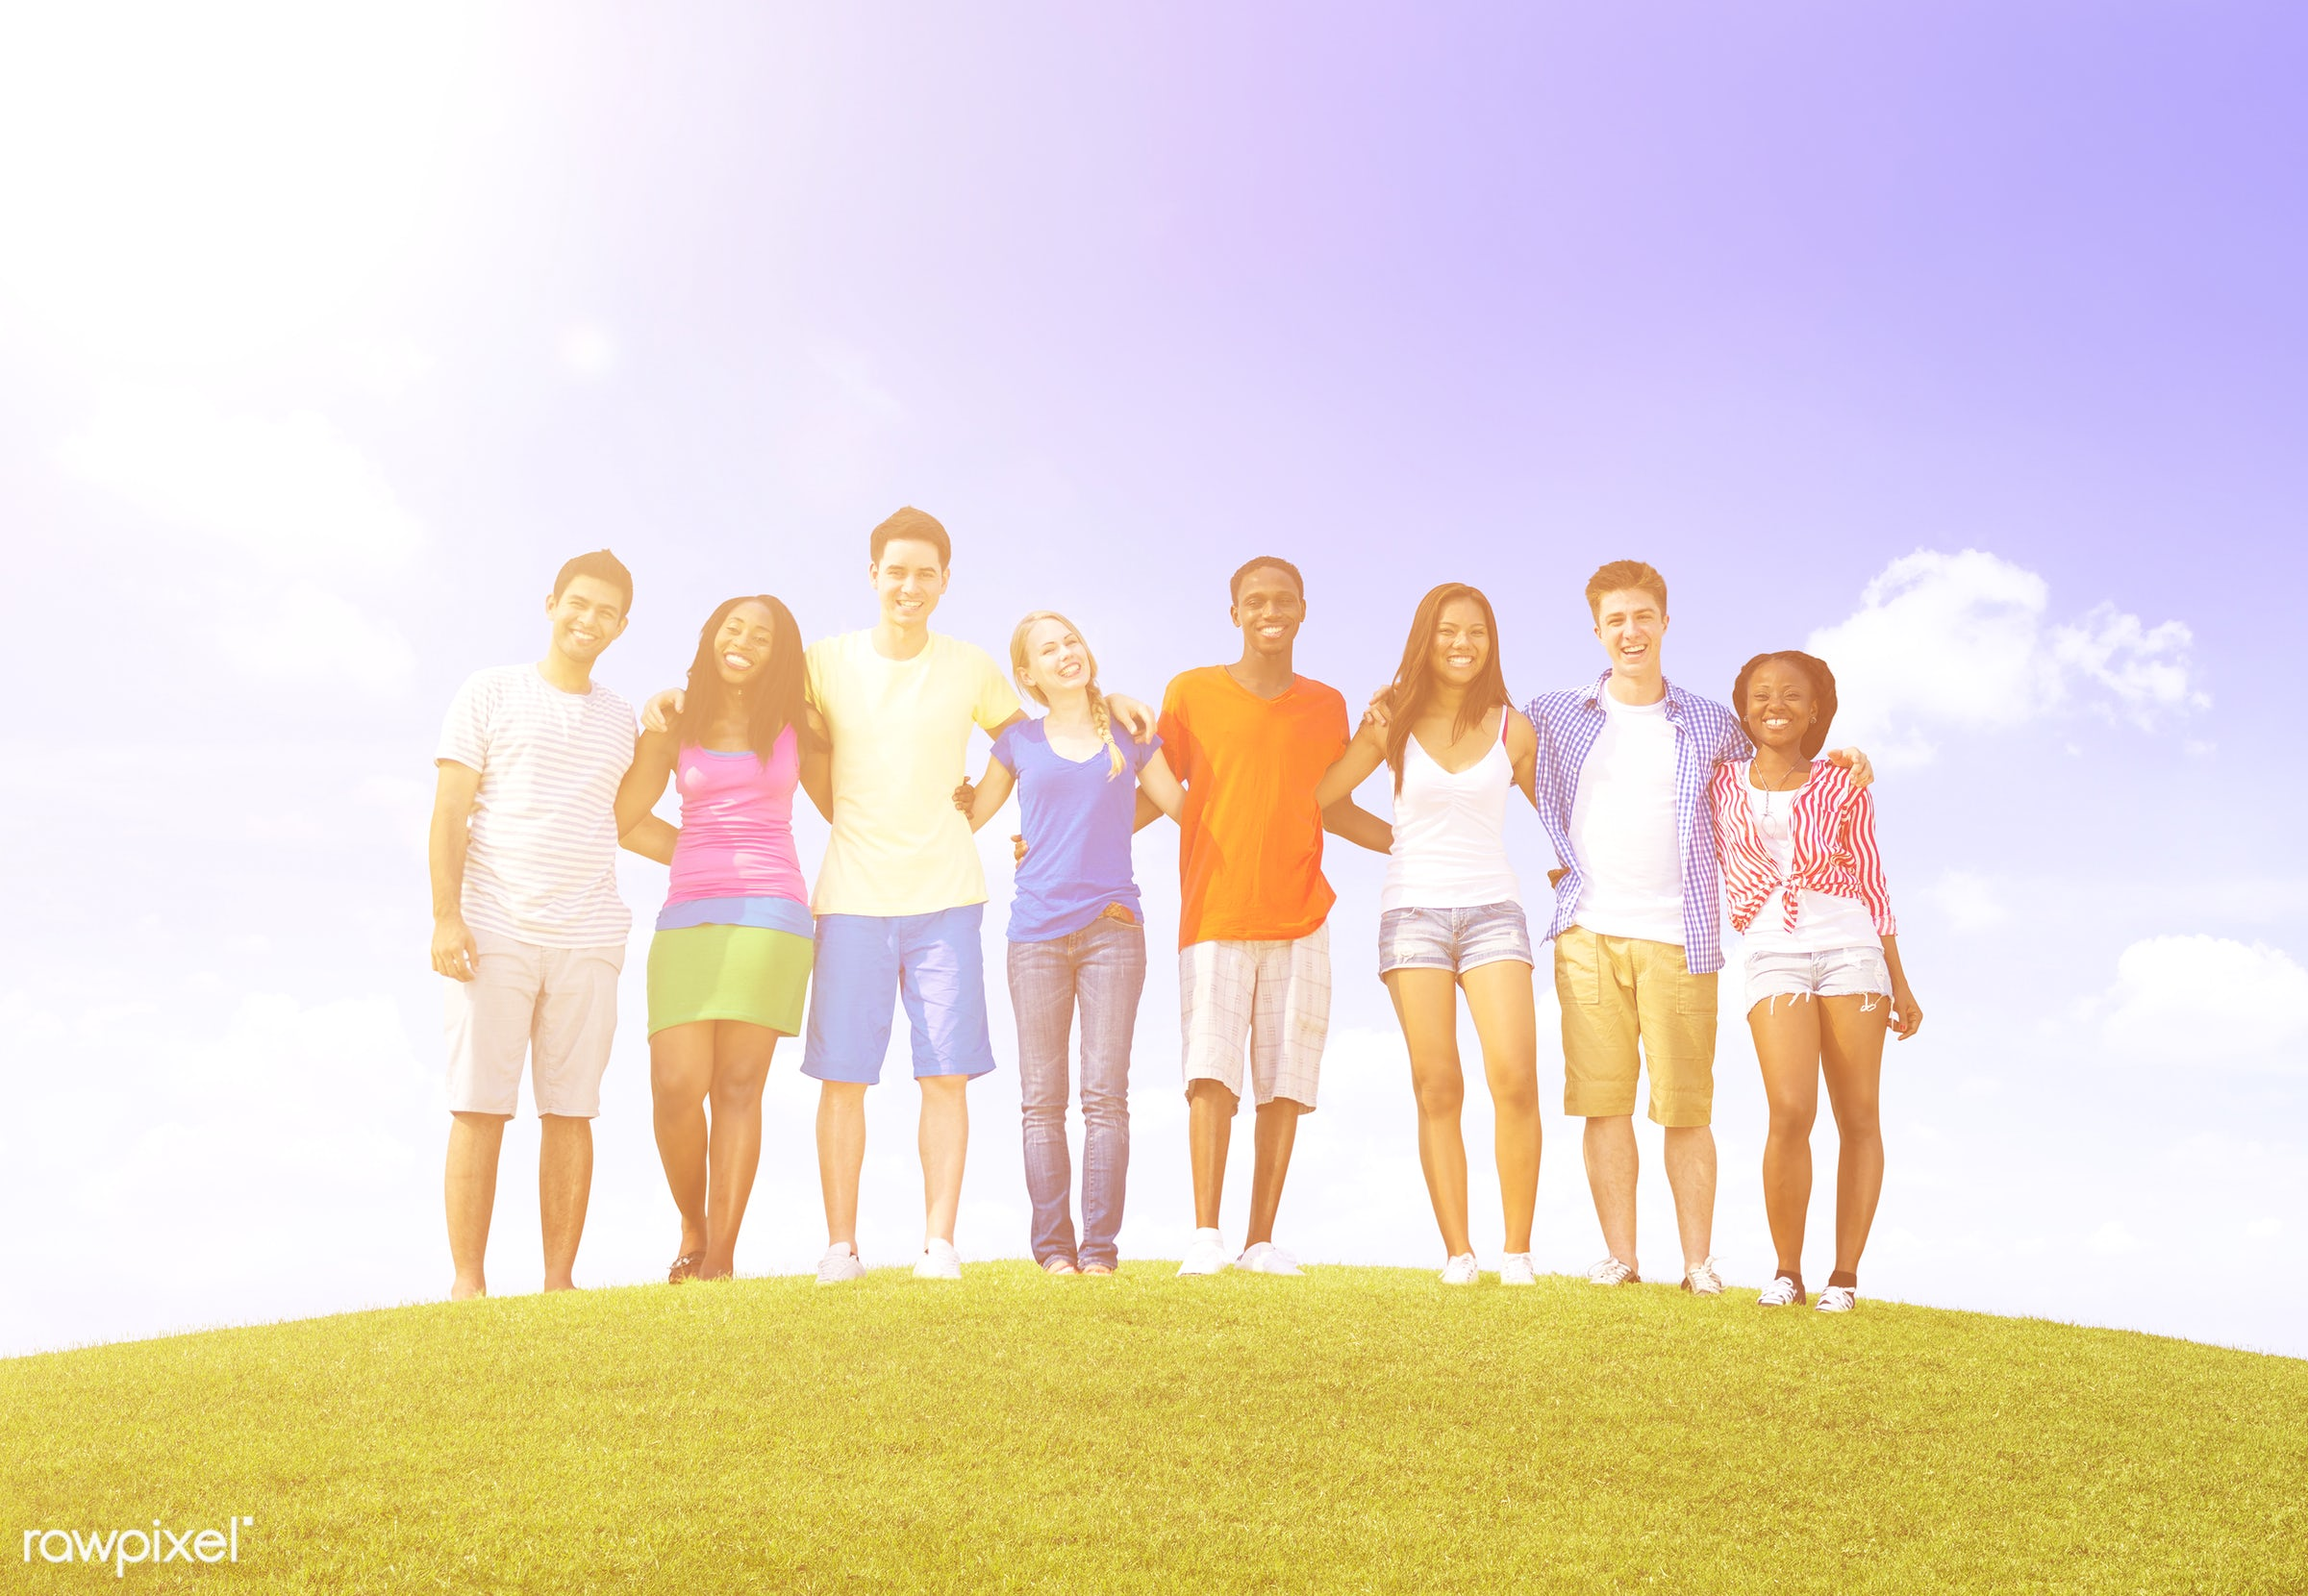 african, casual, casual wear, celebration, cheerful, clouds, colorful, ethnic, excitement, freedom, freshness, friendship,...